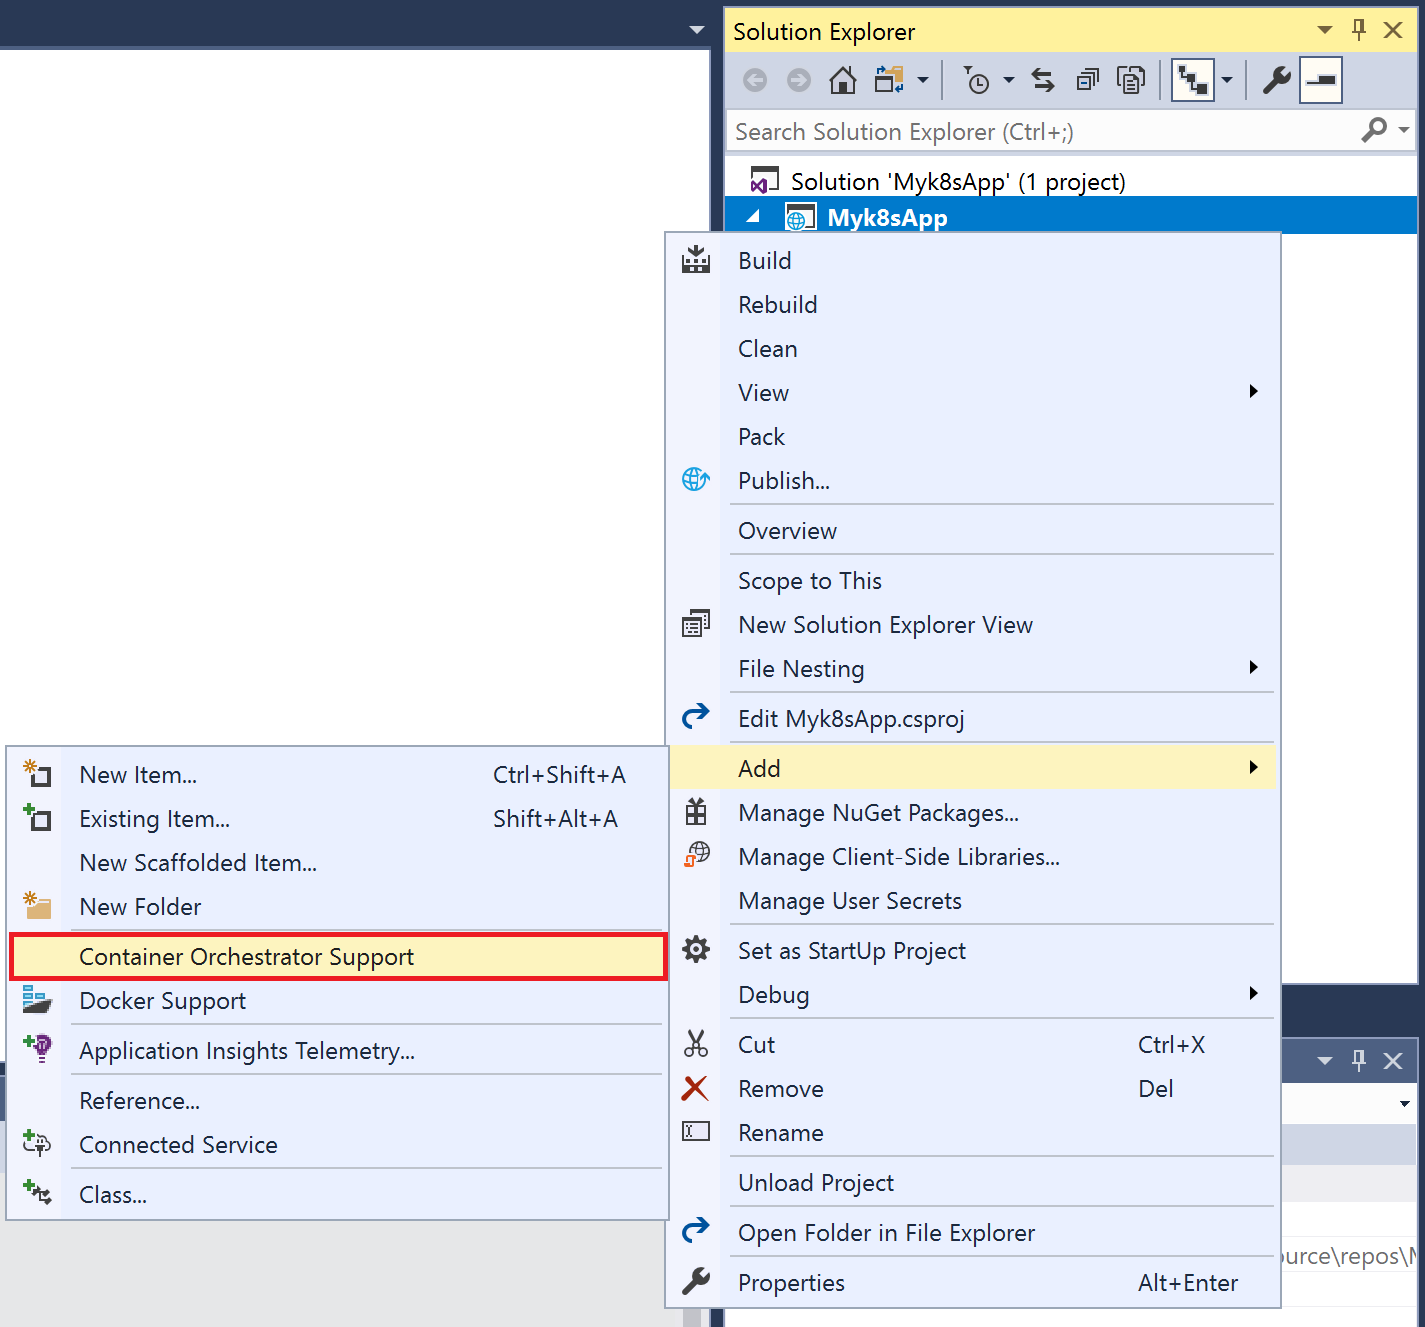 Screenshot of adding container orchestrator support to an existing project